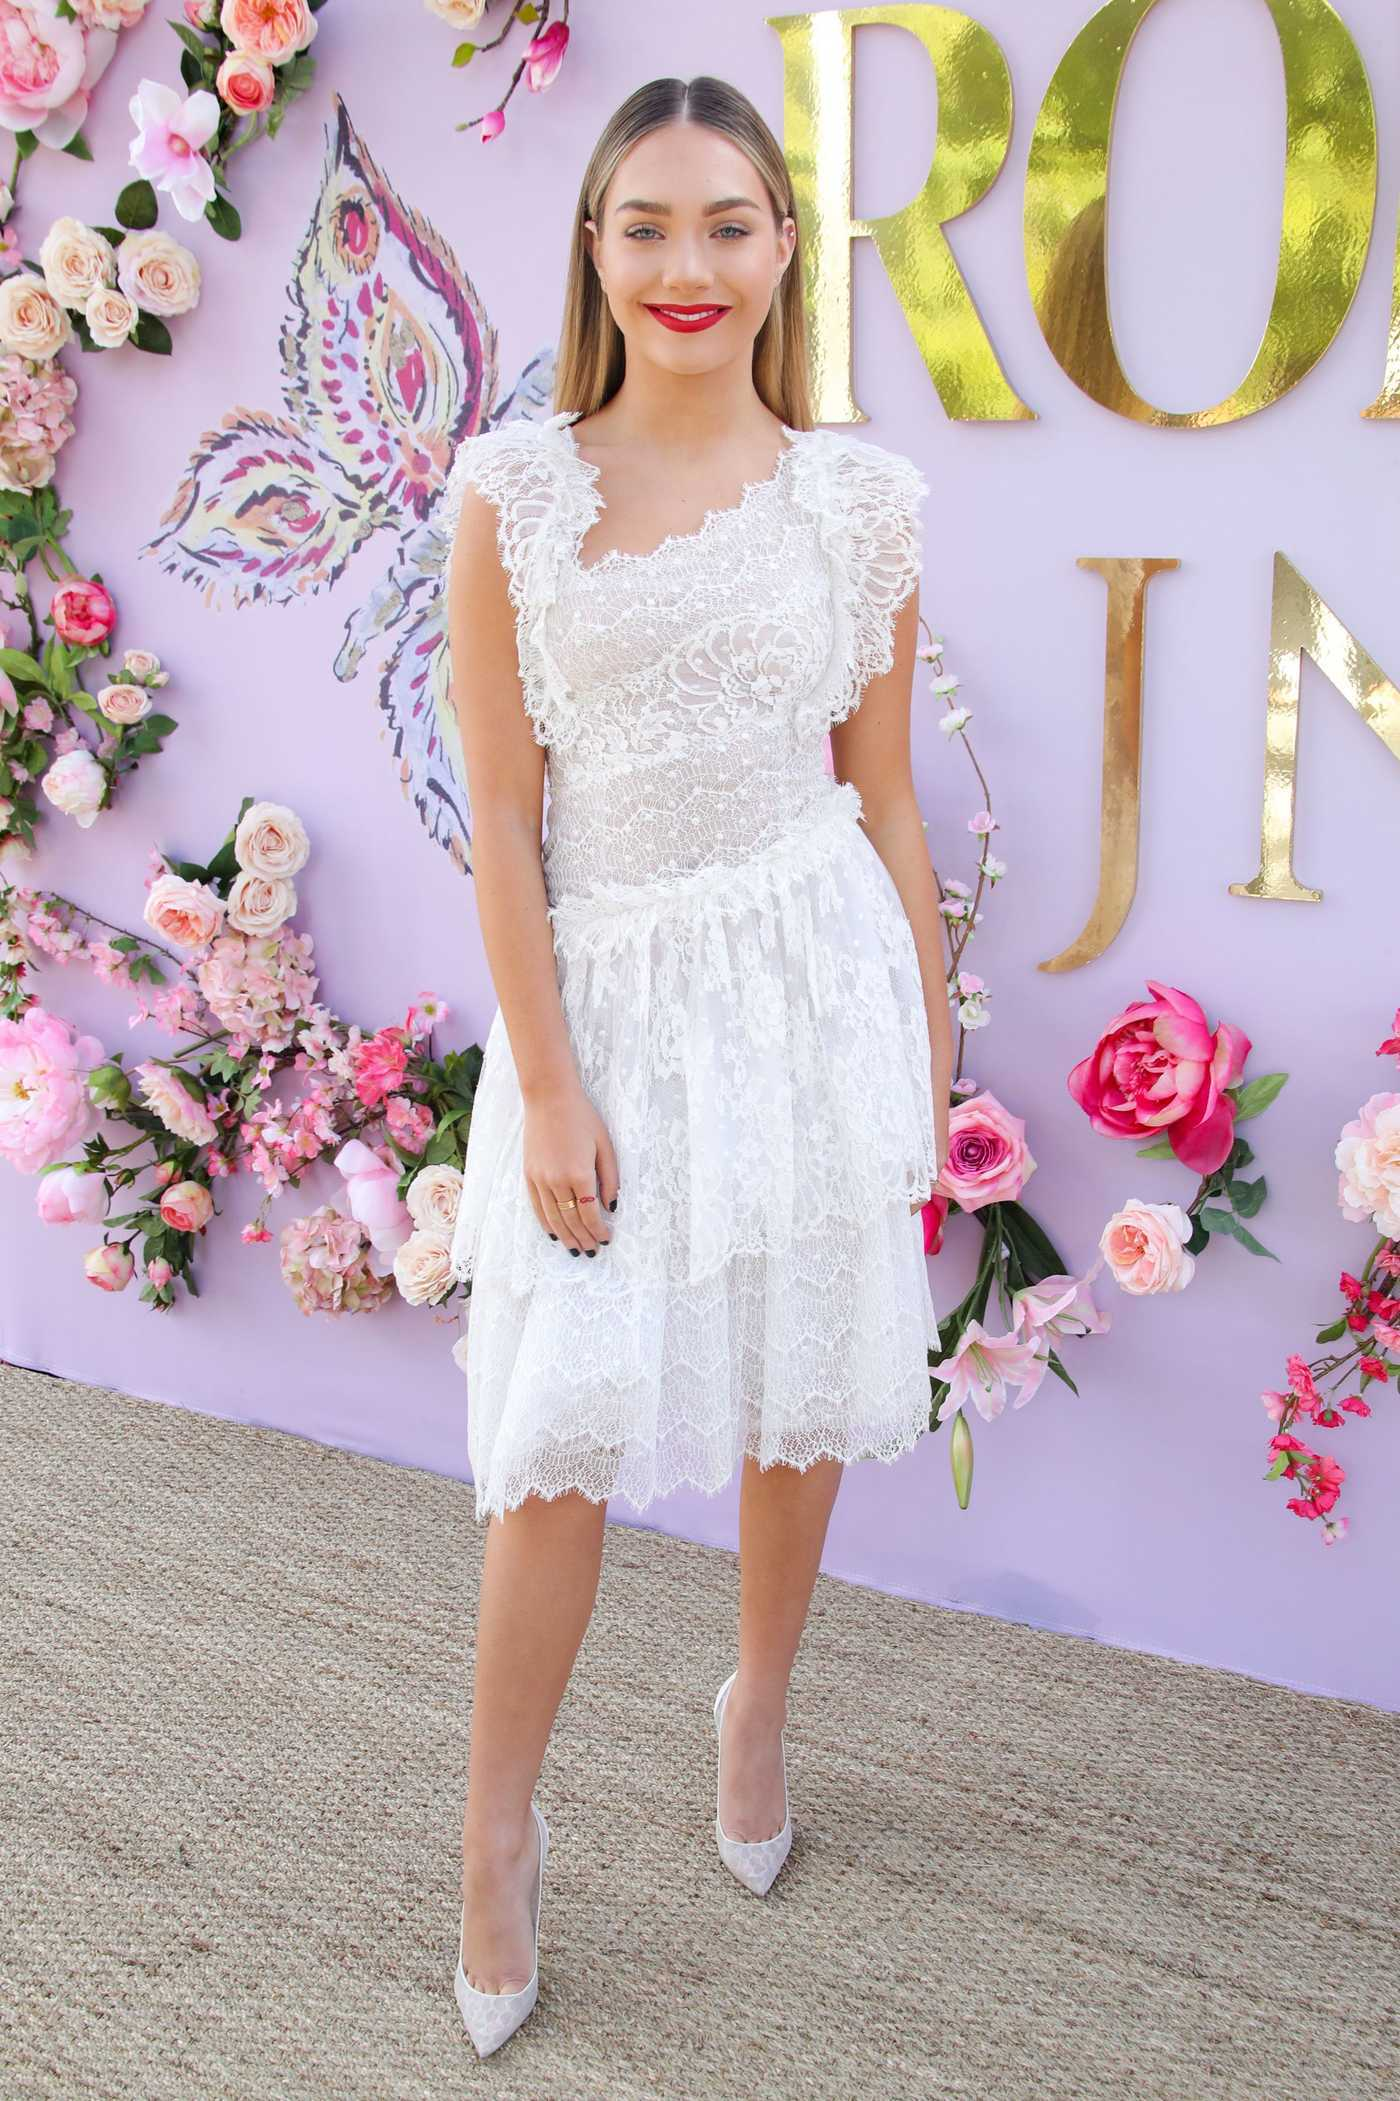 Maddie Ziegler Attends 2019 Rodarte Show at Huntington Library in California 02/05/2019